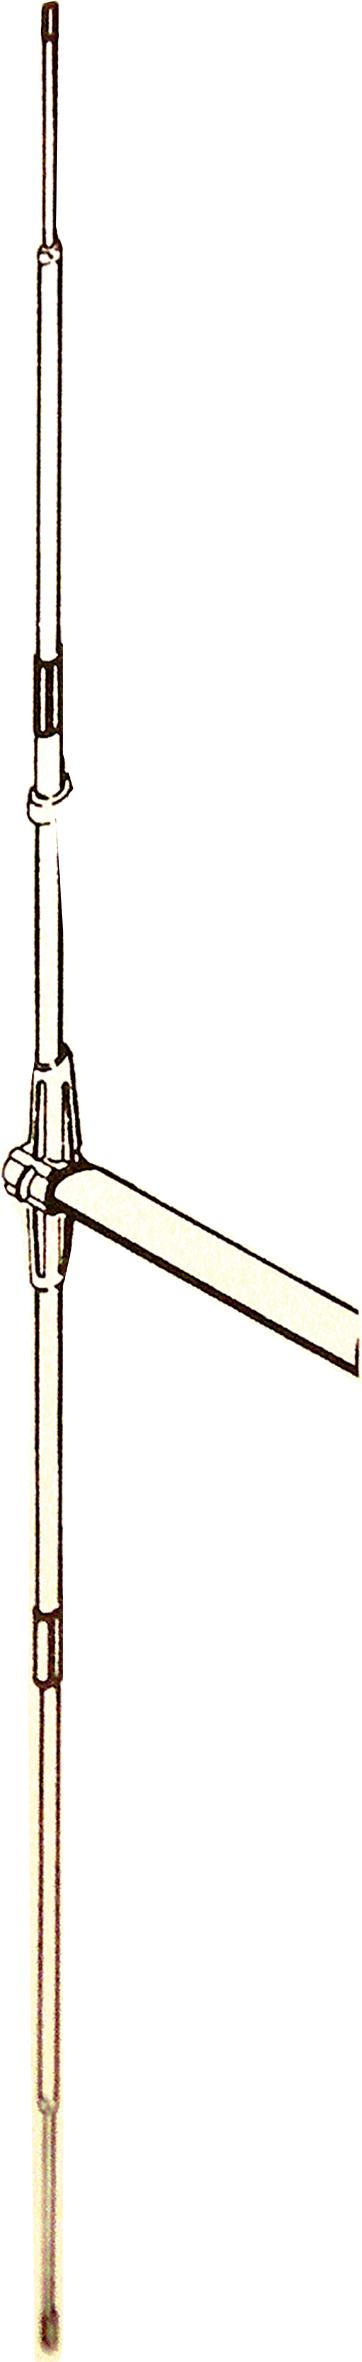 Cb Radio DIPOLE BASE ANTENNA